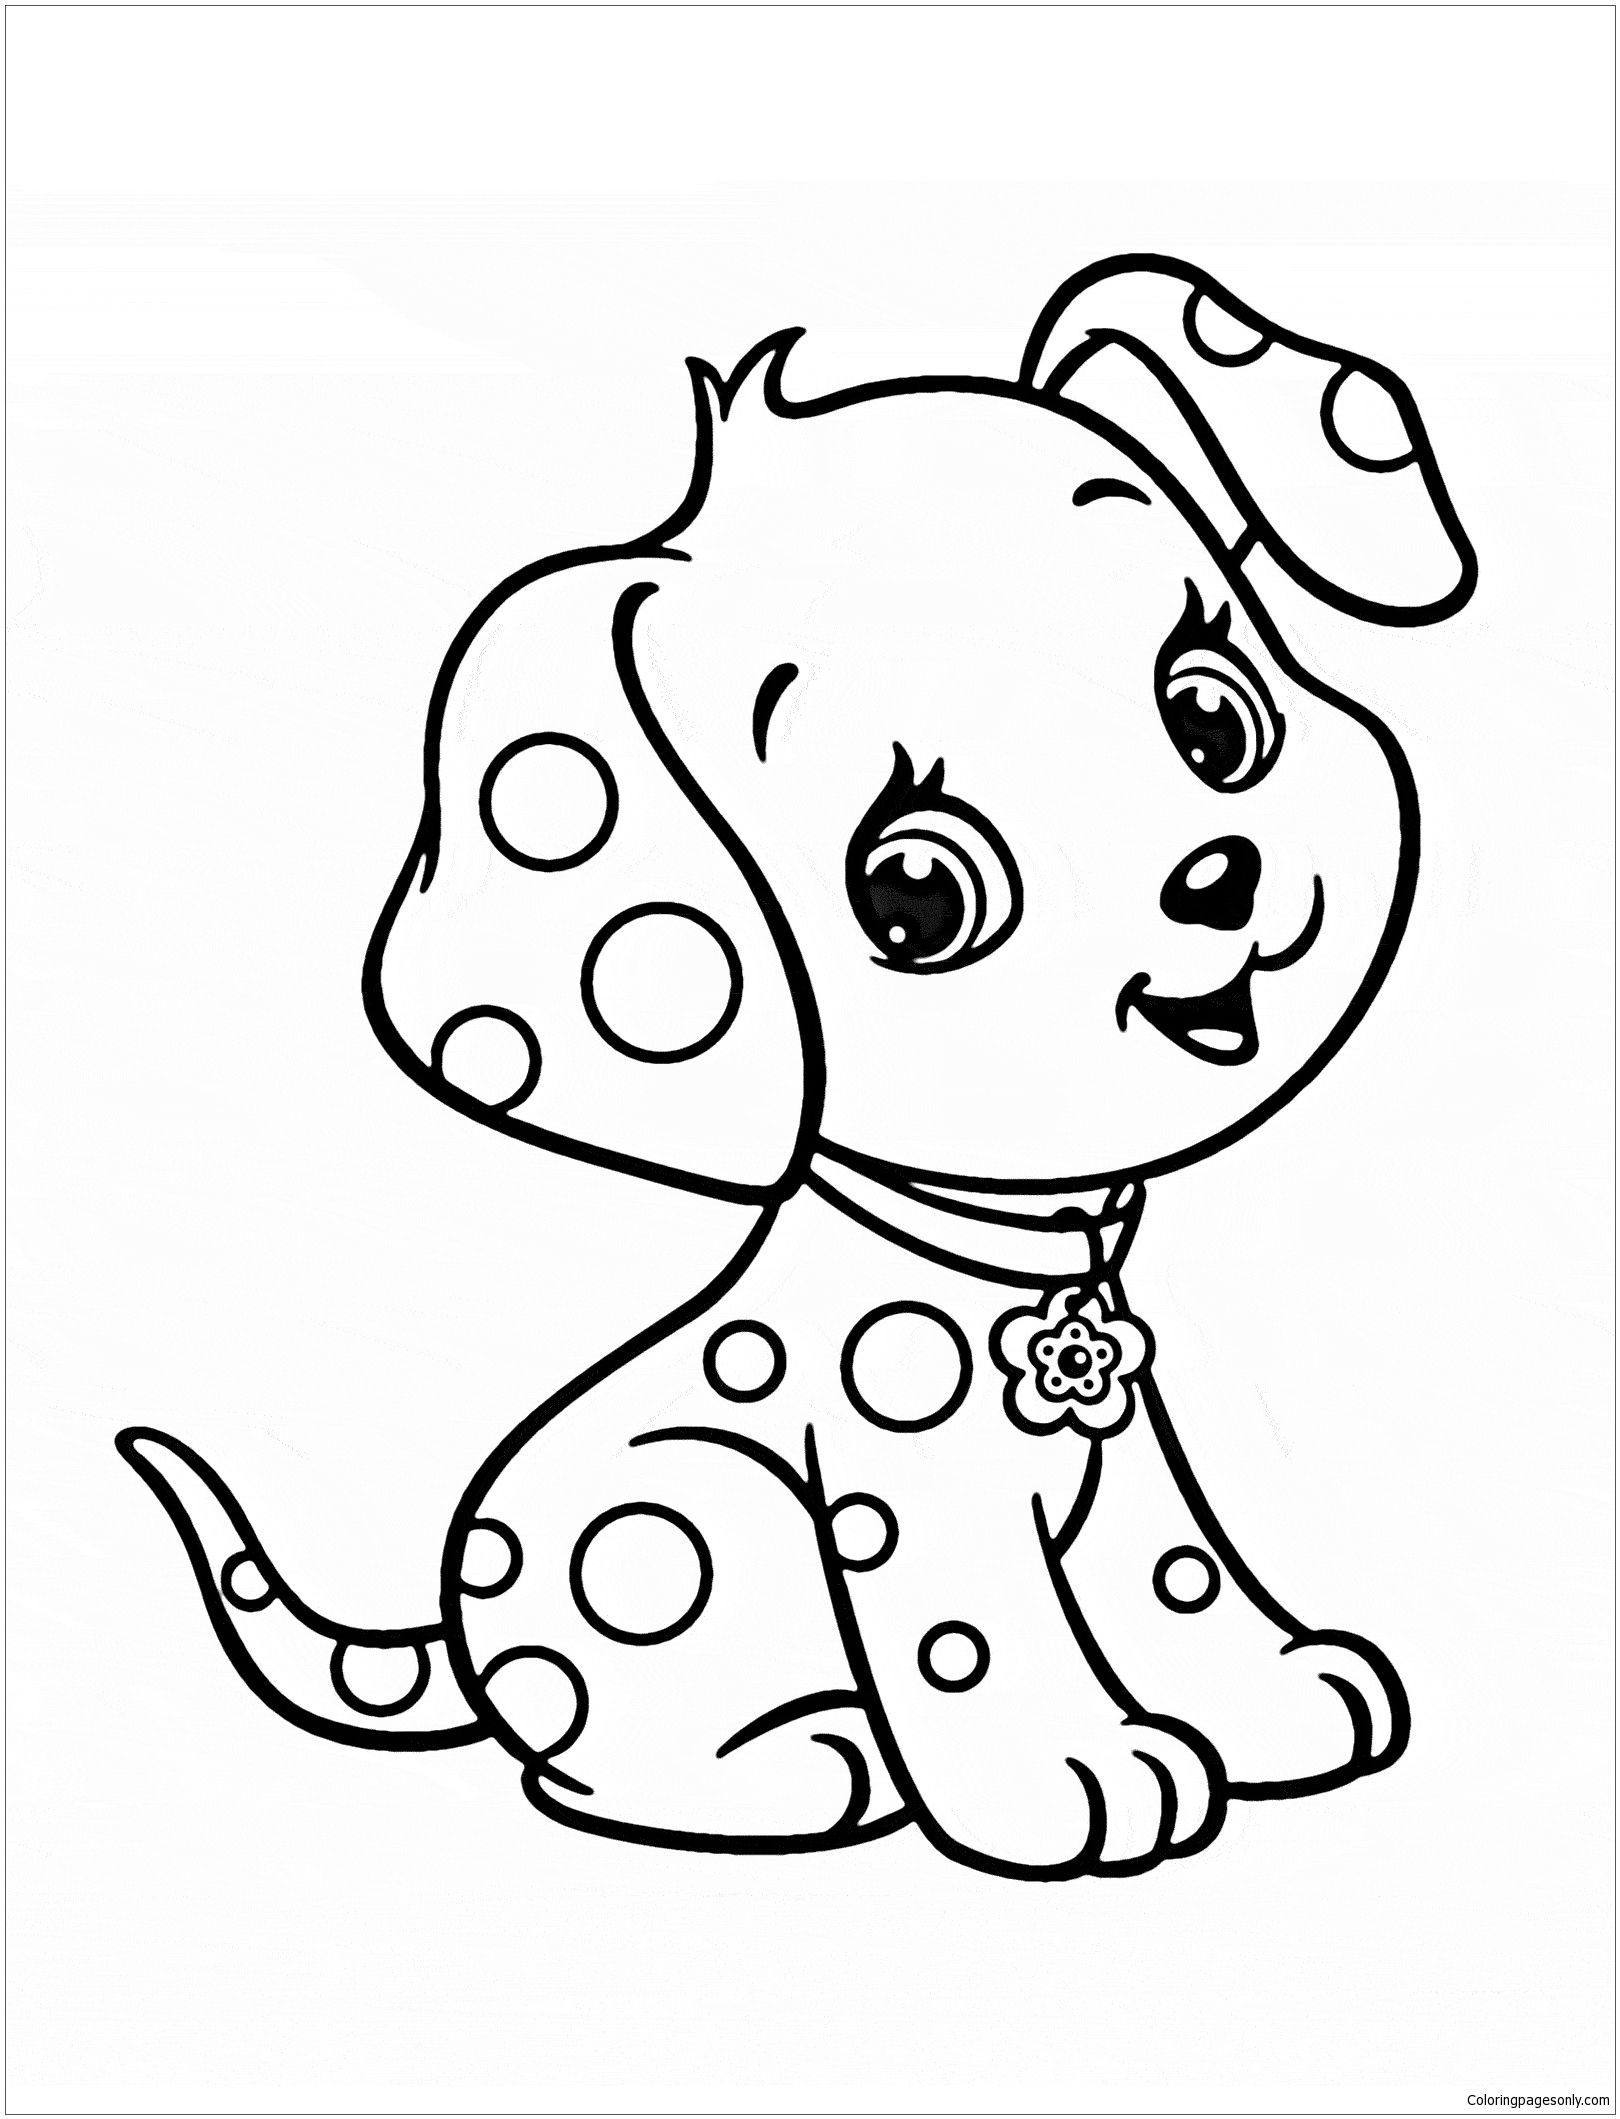 pictures of puppies to color puppy coloring pages best coloring pages for kids puppies color to of pictures